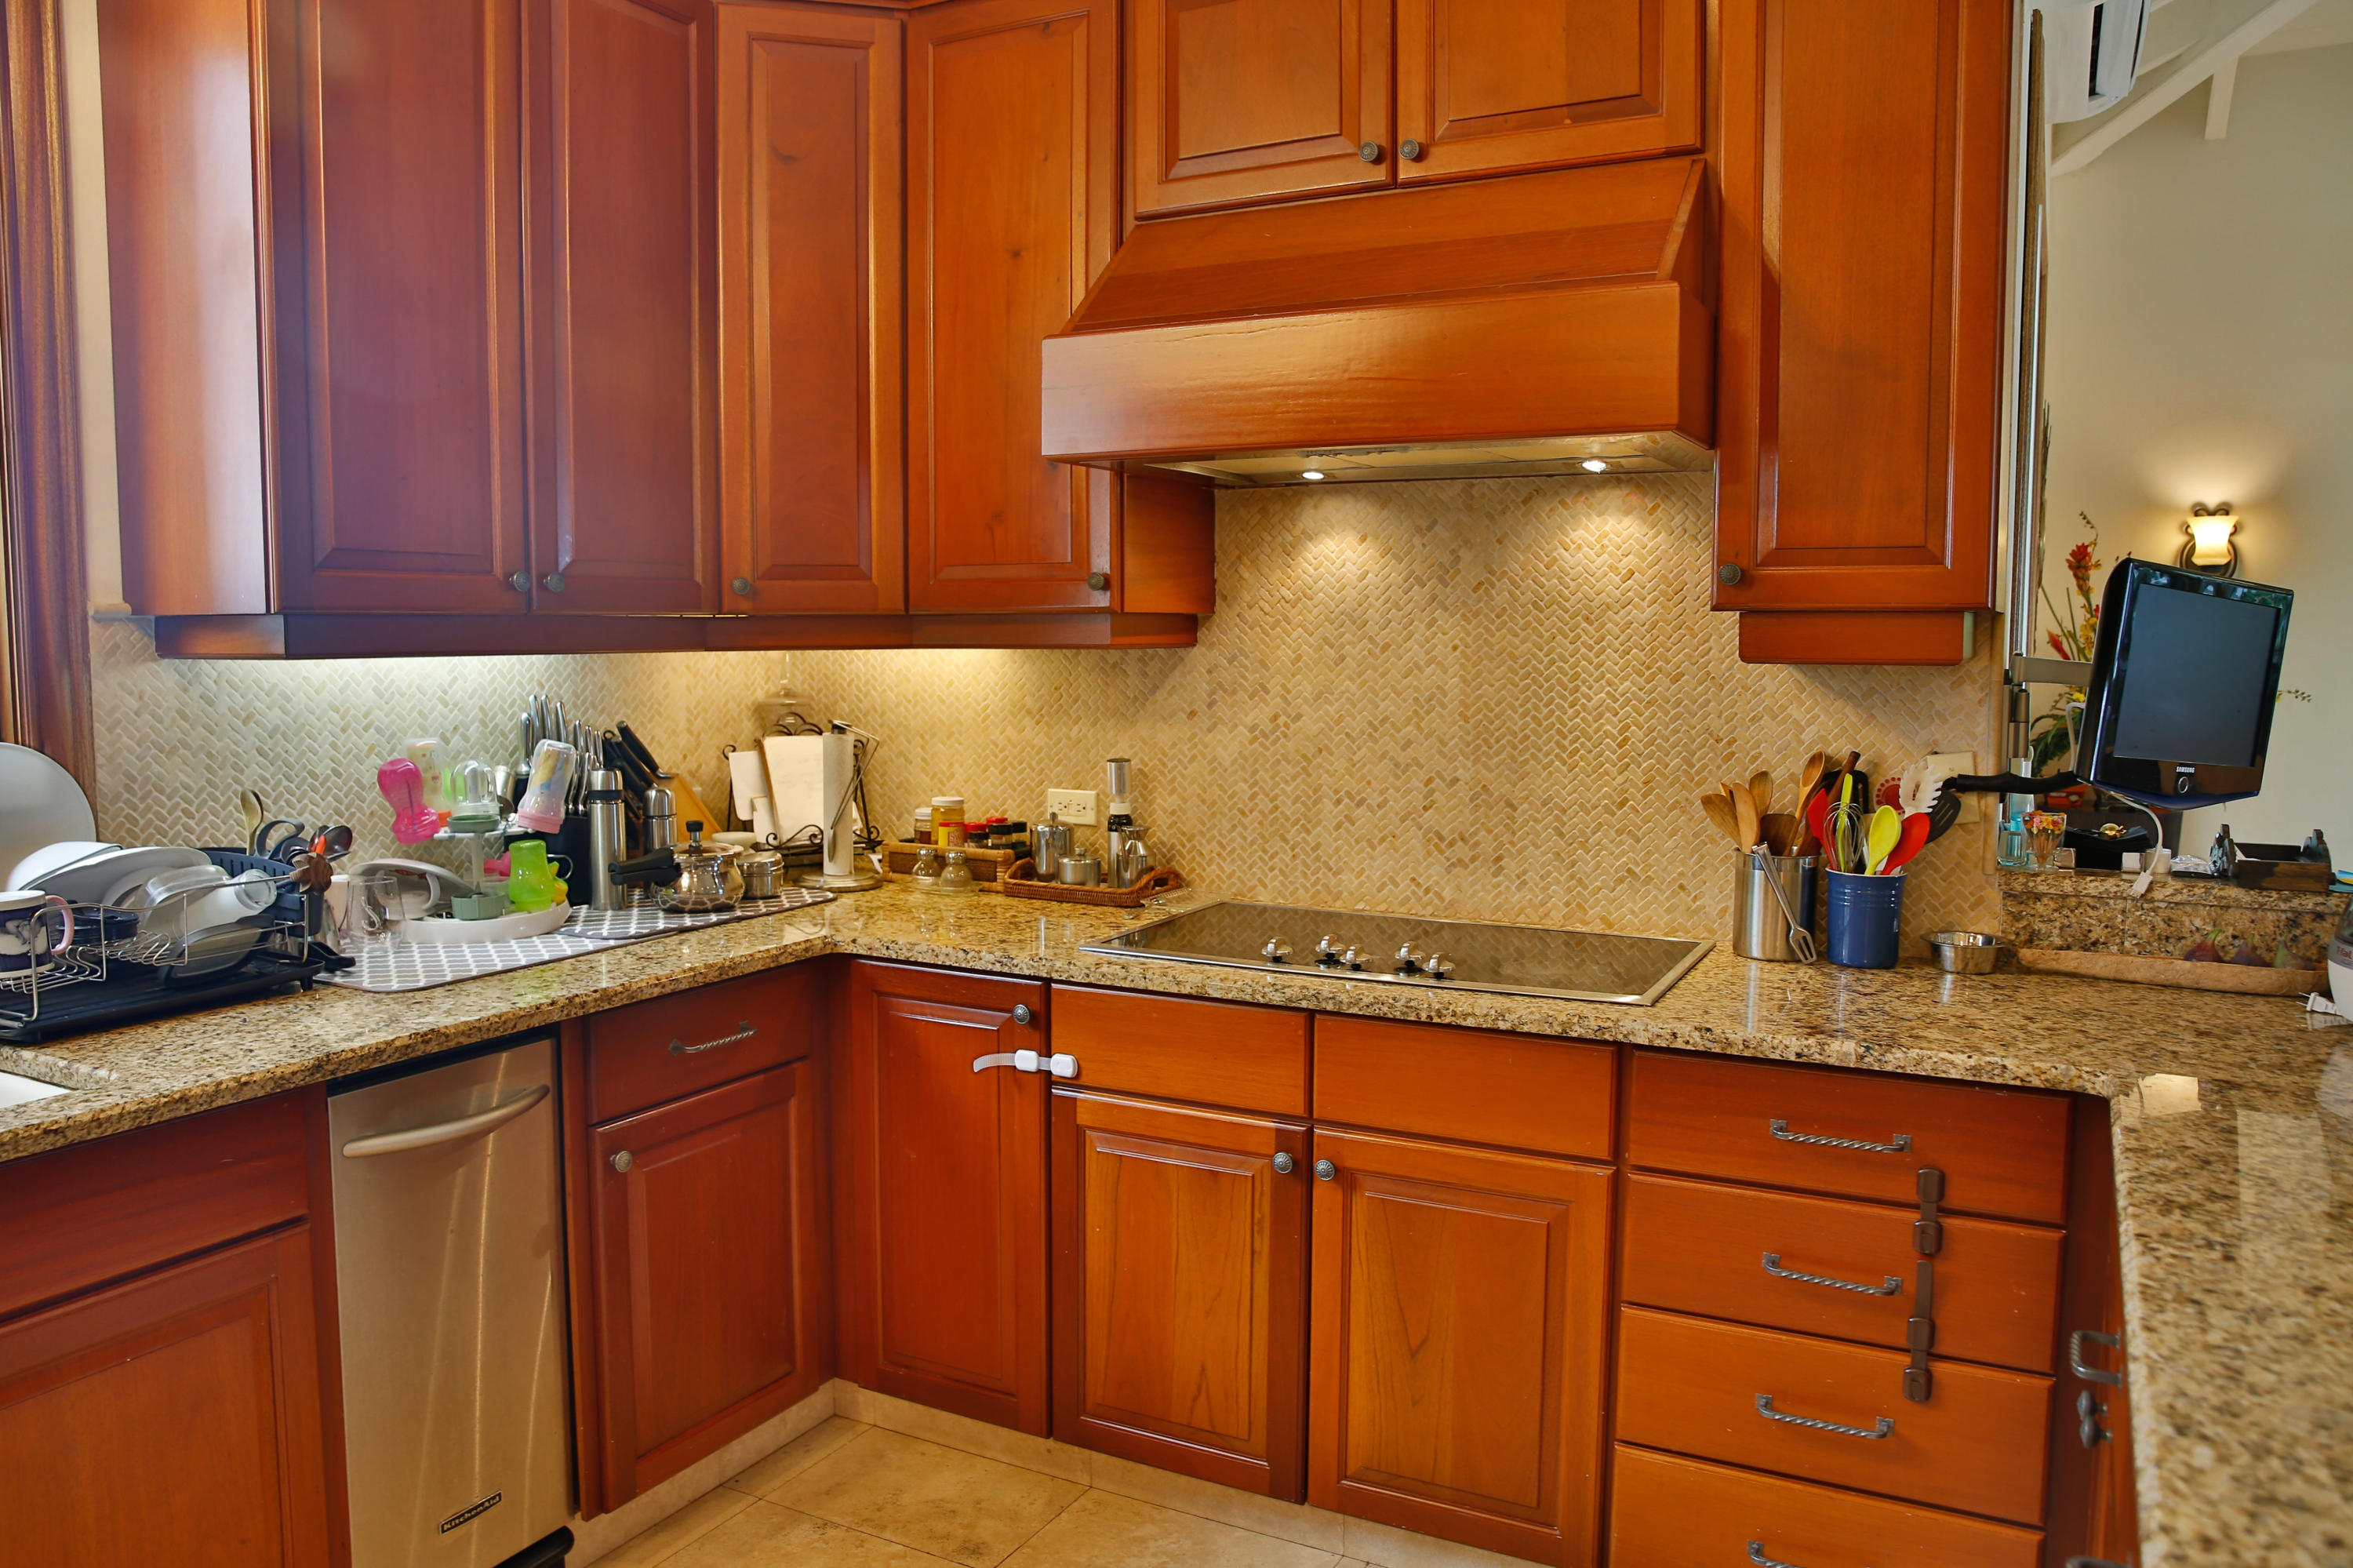 Any Chef will like this kitchen.